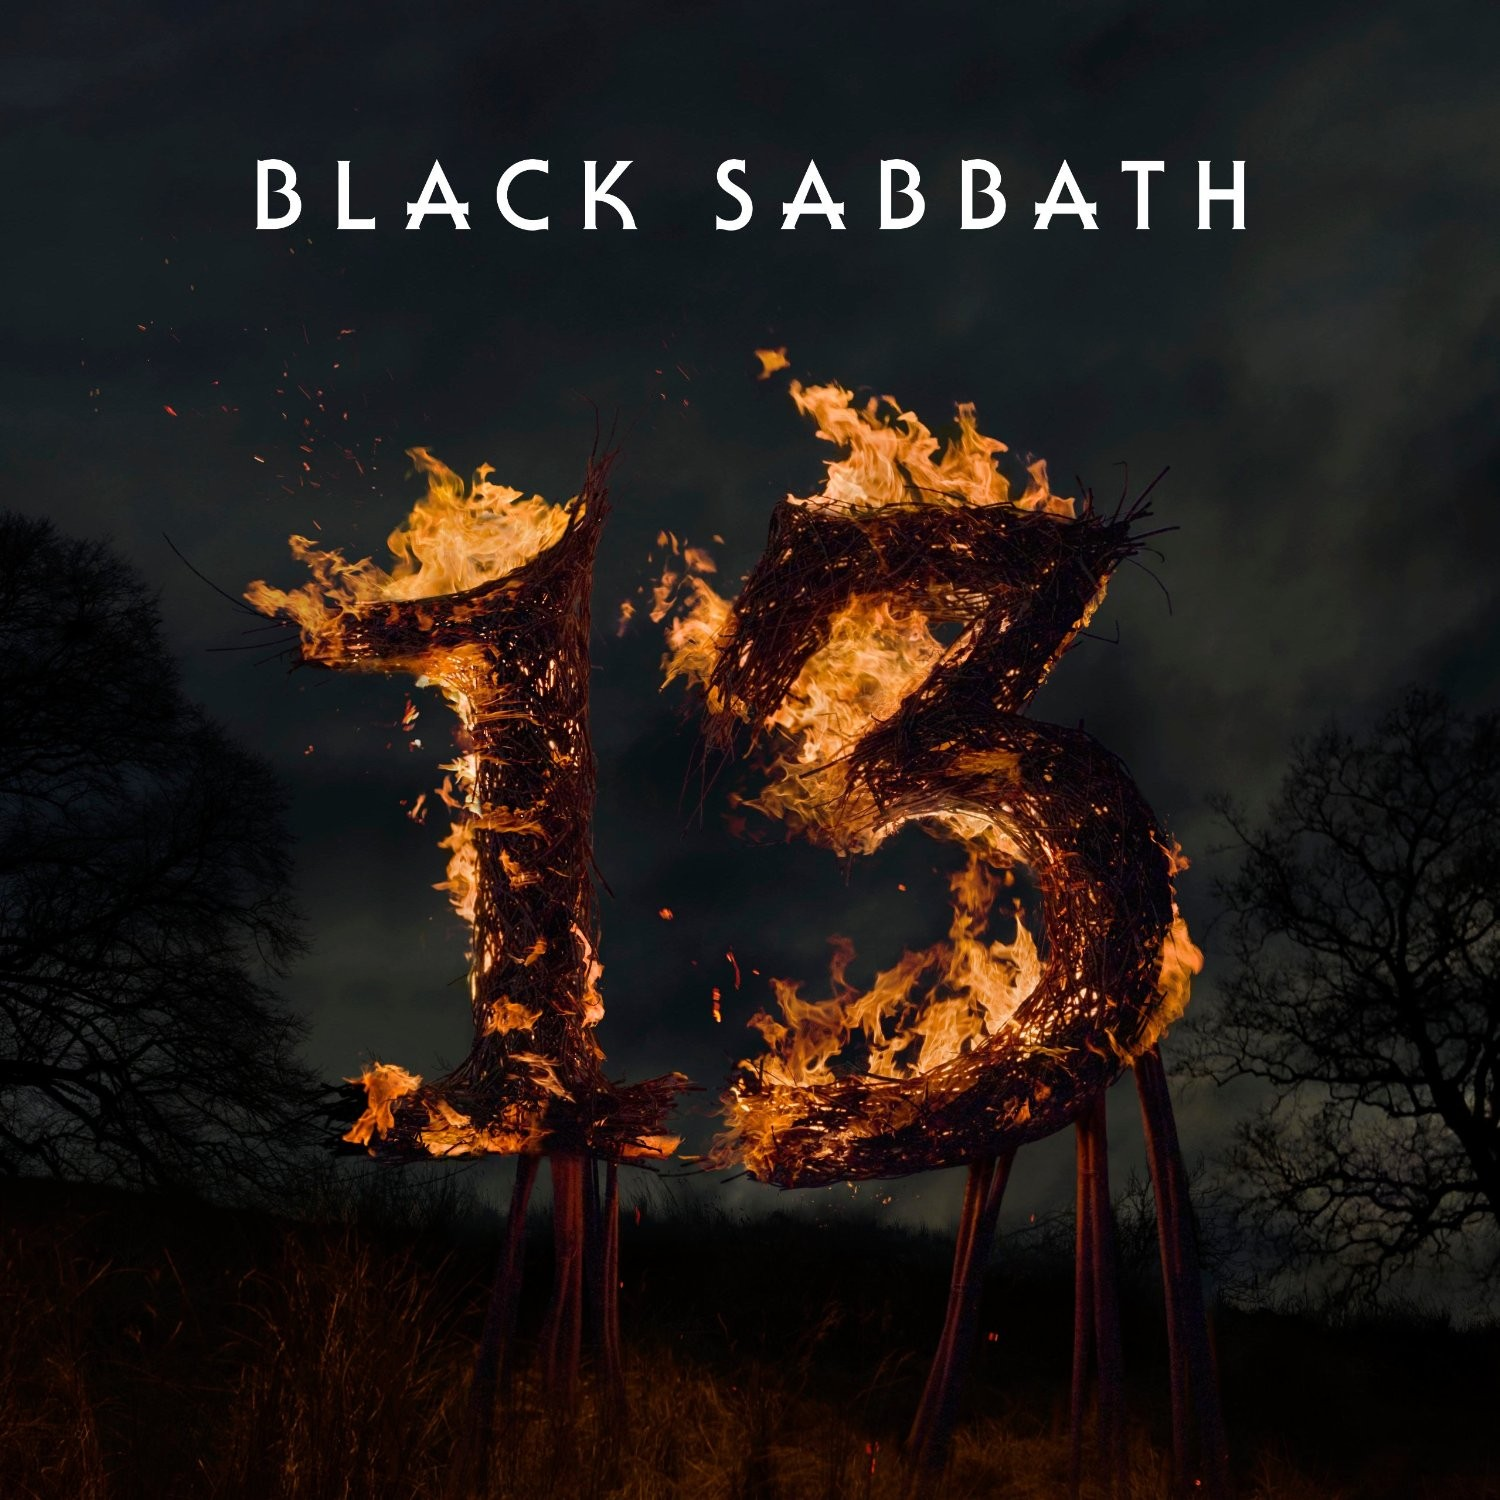 Black Sabbath 13 Album Cover